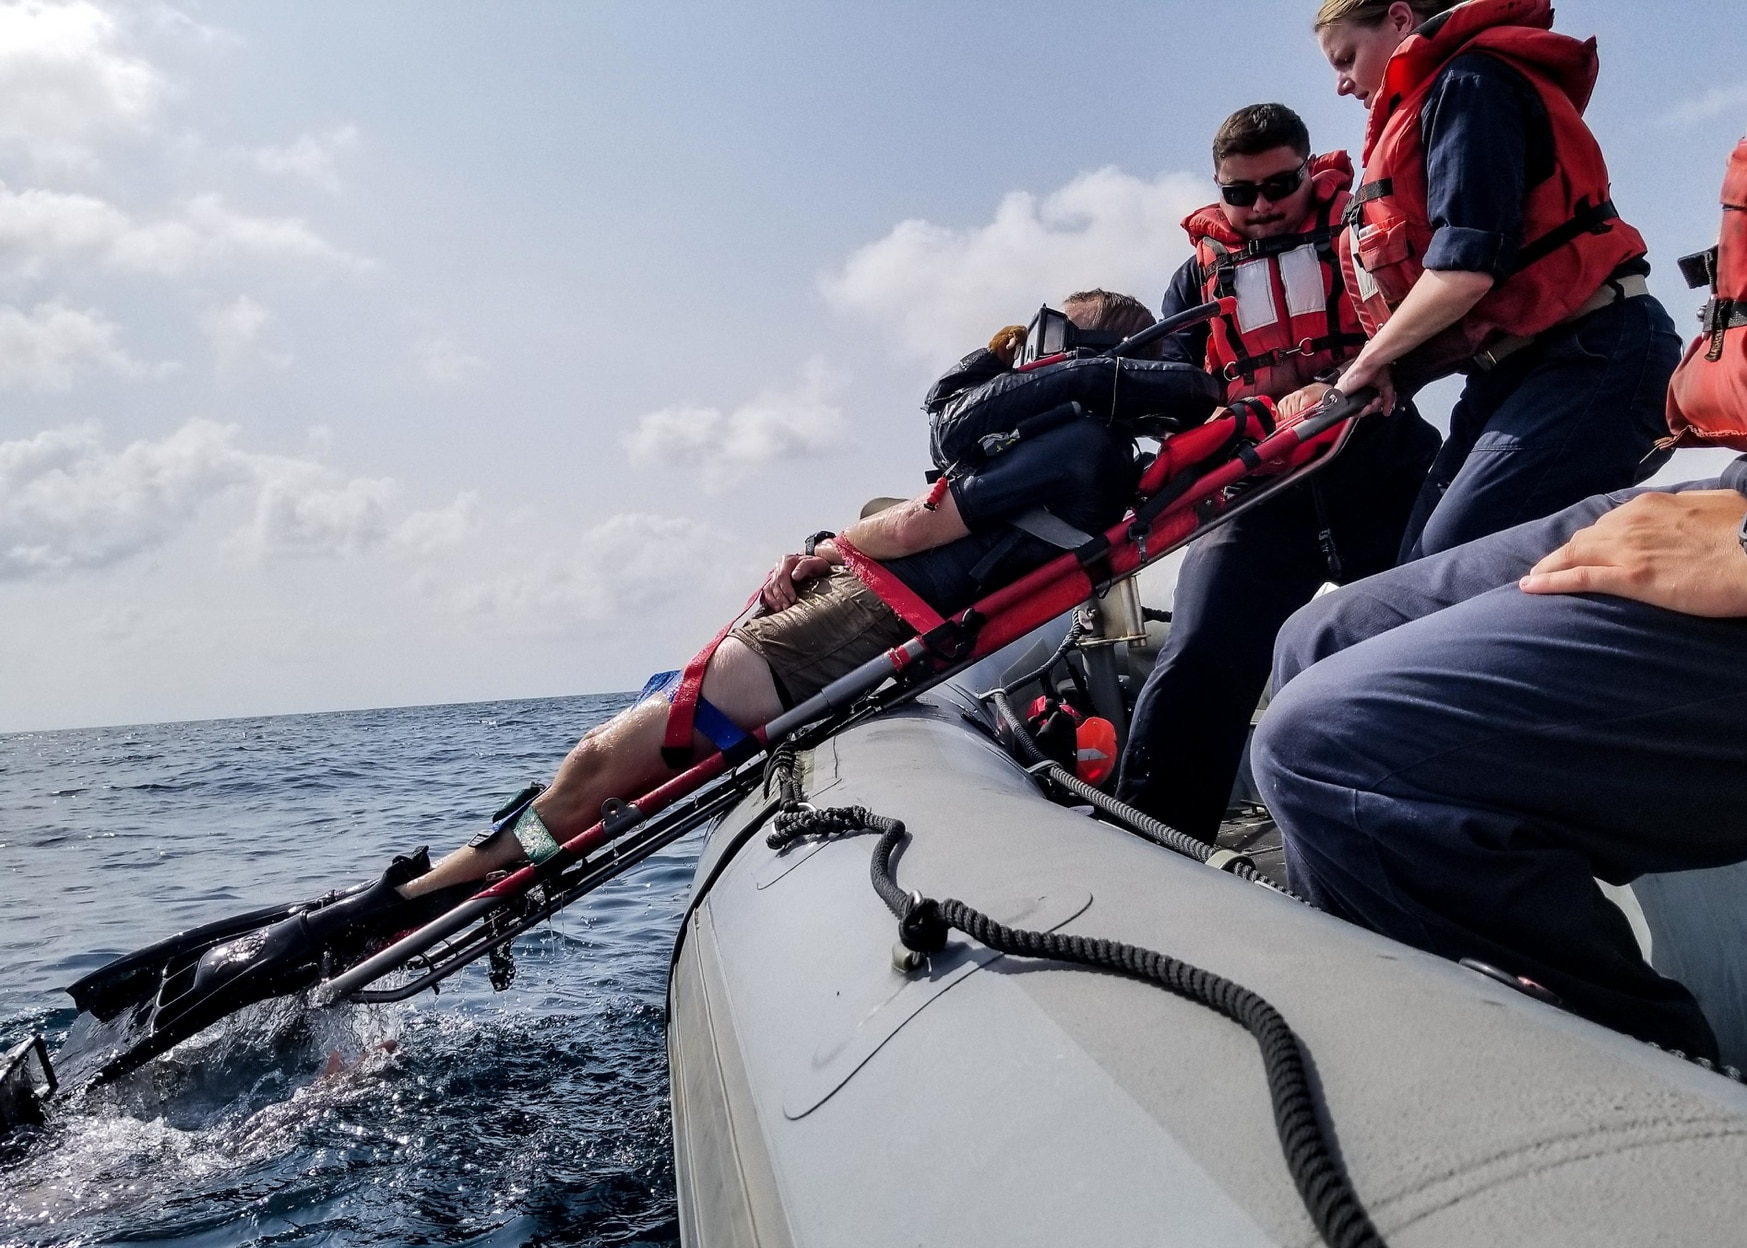 Ensign Samantha Rados, right, and Machinist's Mate 2nd Class Samuel Green, center, assigned to the warship Jason Dunham, pull Quartermaster 2nd Class Christopher McGann, a search and rescue swimmer out of the water on a litter into a rigid-hull inflatable boat during training during the ship's 2018 deployment. A few months before, their shipmate, Ensign Sarah Mitchell, died after falling from a RHIB and getting struck by the propeller. (Navy)